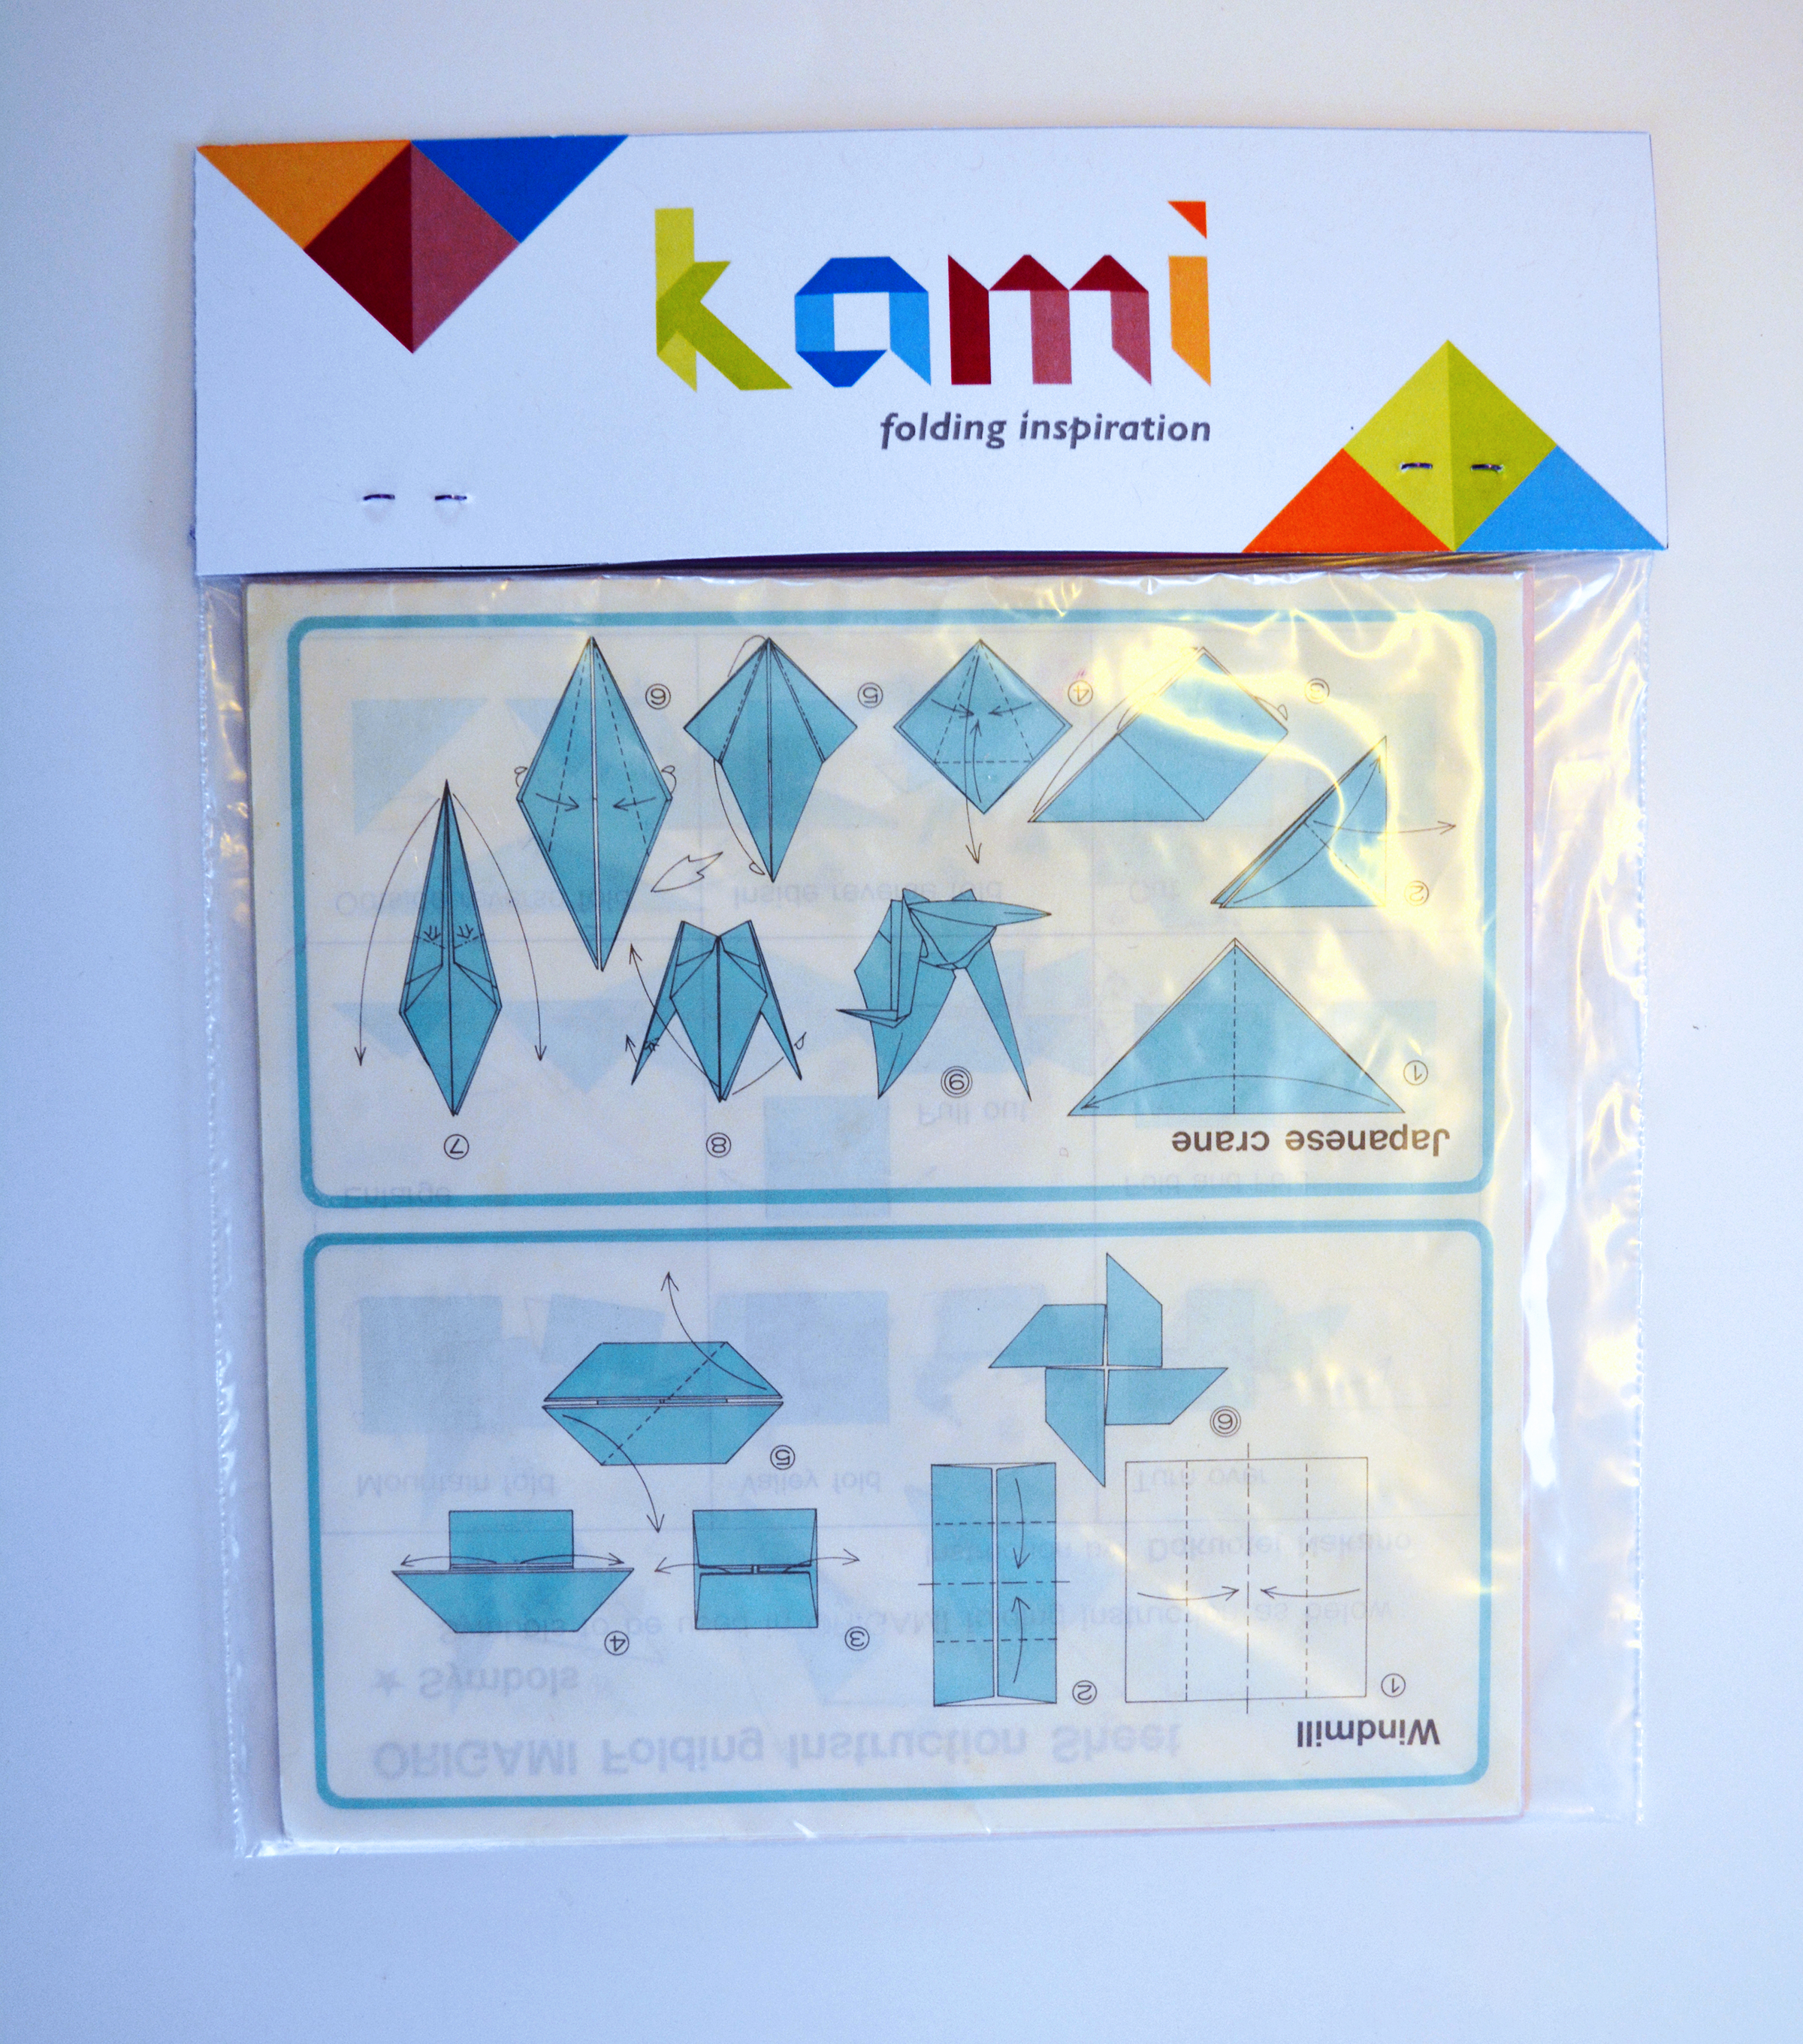 Kami: Origami Paper Company on Behance